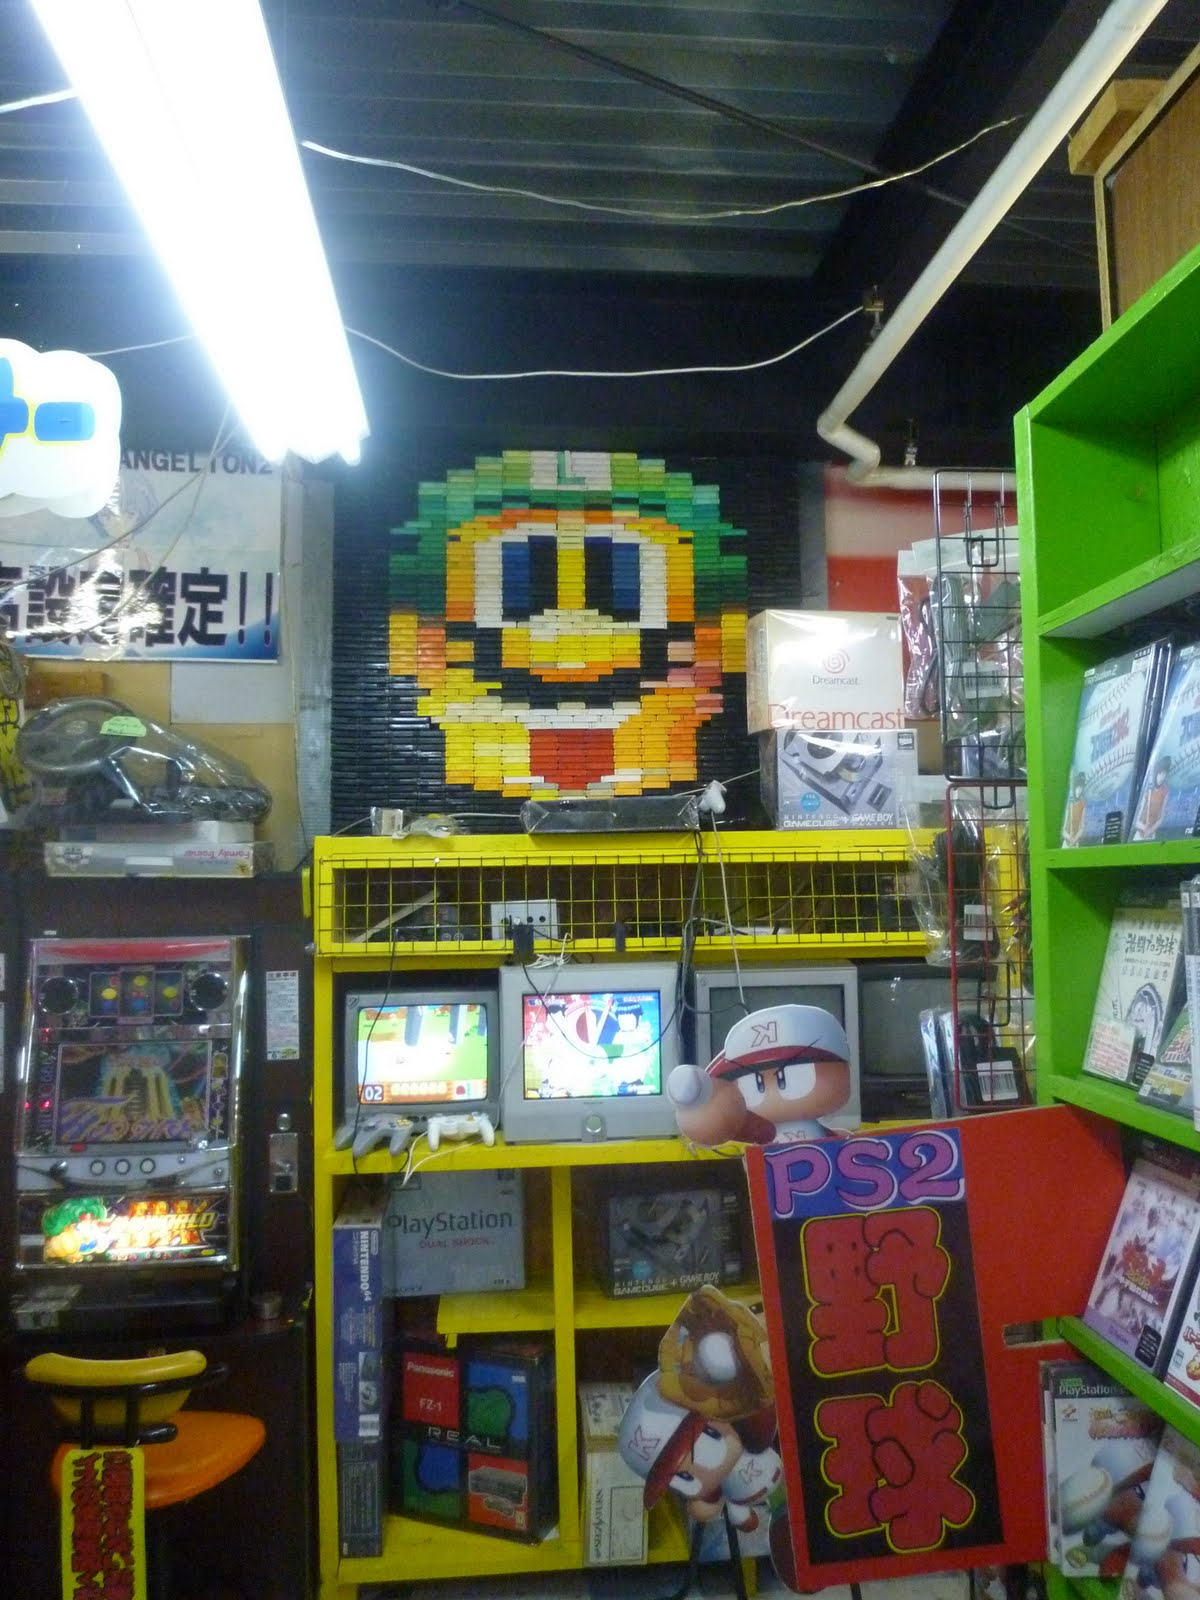 Famicomblog: Anatomy of a Japanese Video Game Store\'s Retro Section